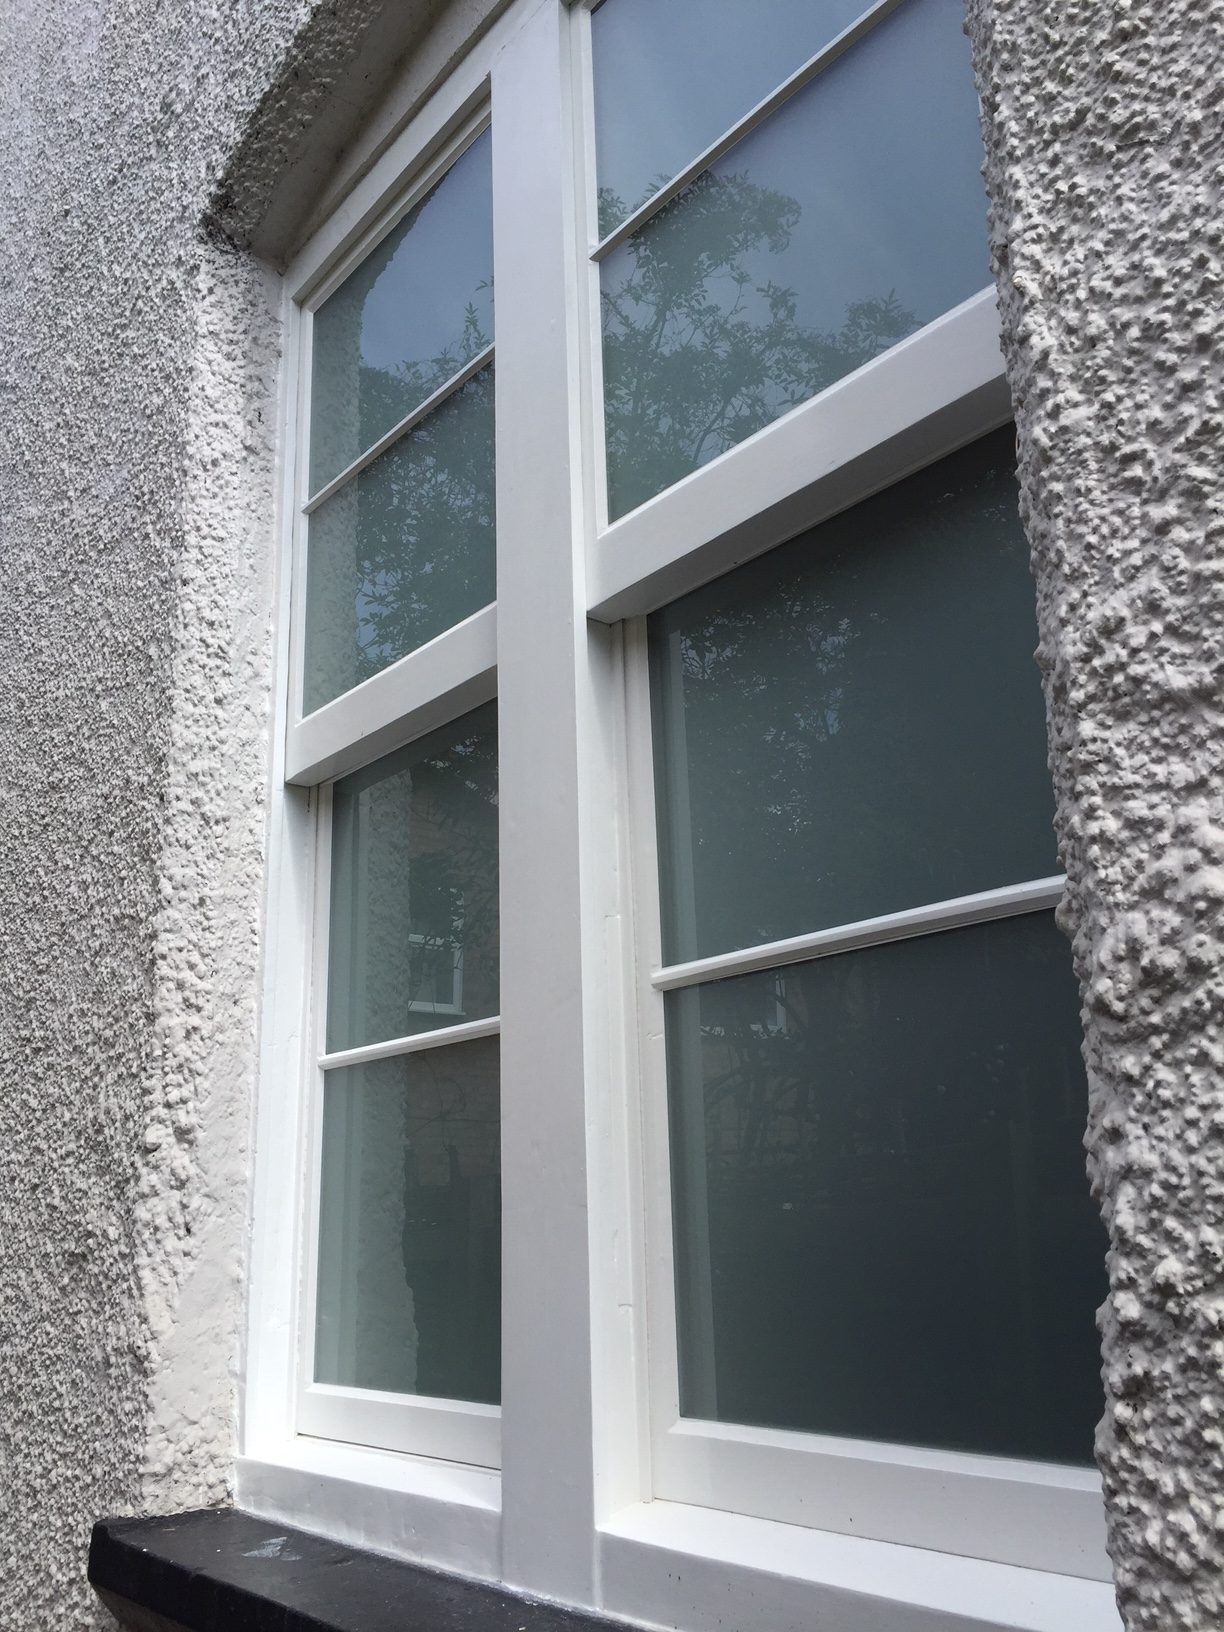 sash window restoration at a house in Hatfield Heath in Essex